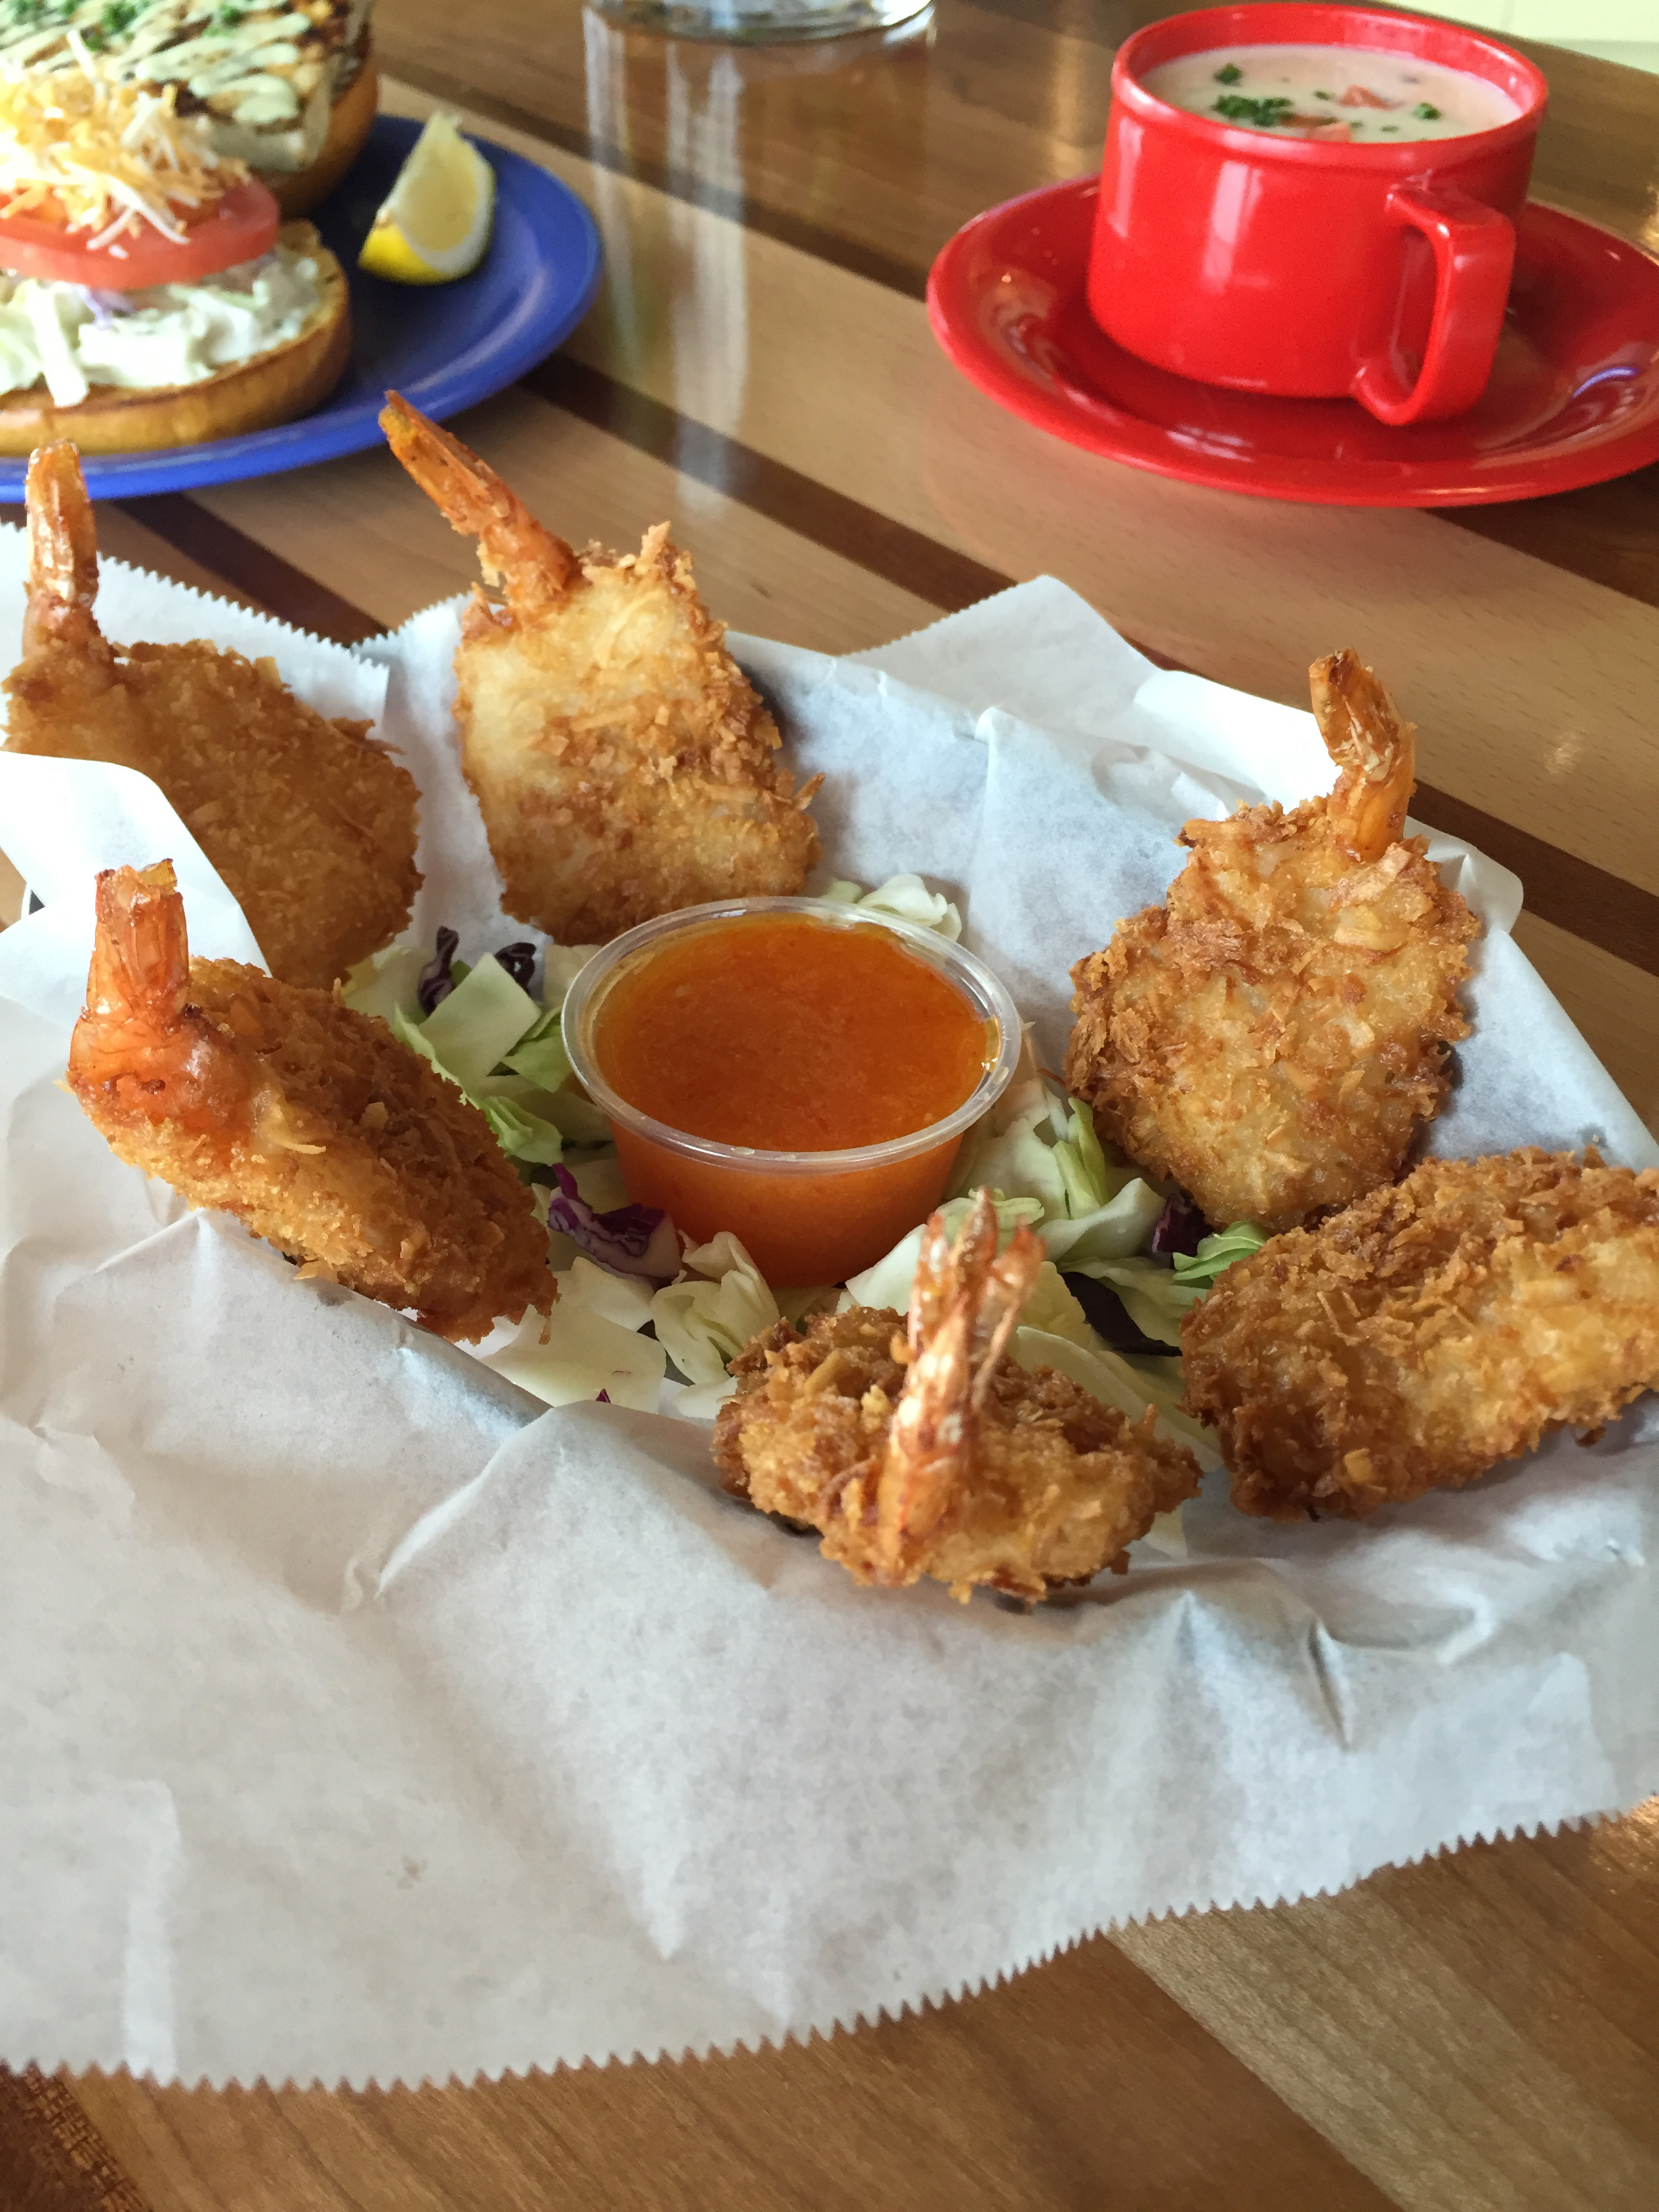 Coconut 39 s fish cafe opens in chandler arizona foodie for Coconut s fish cafe